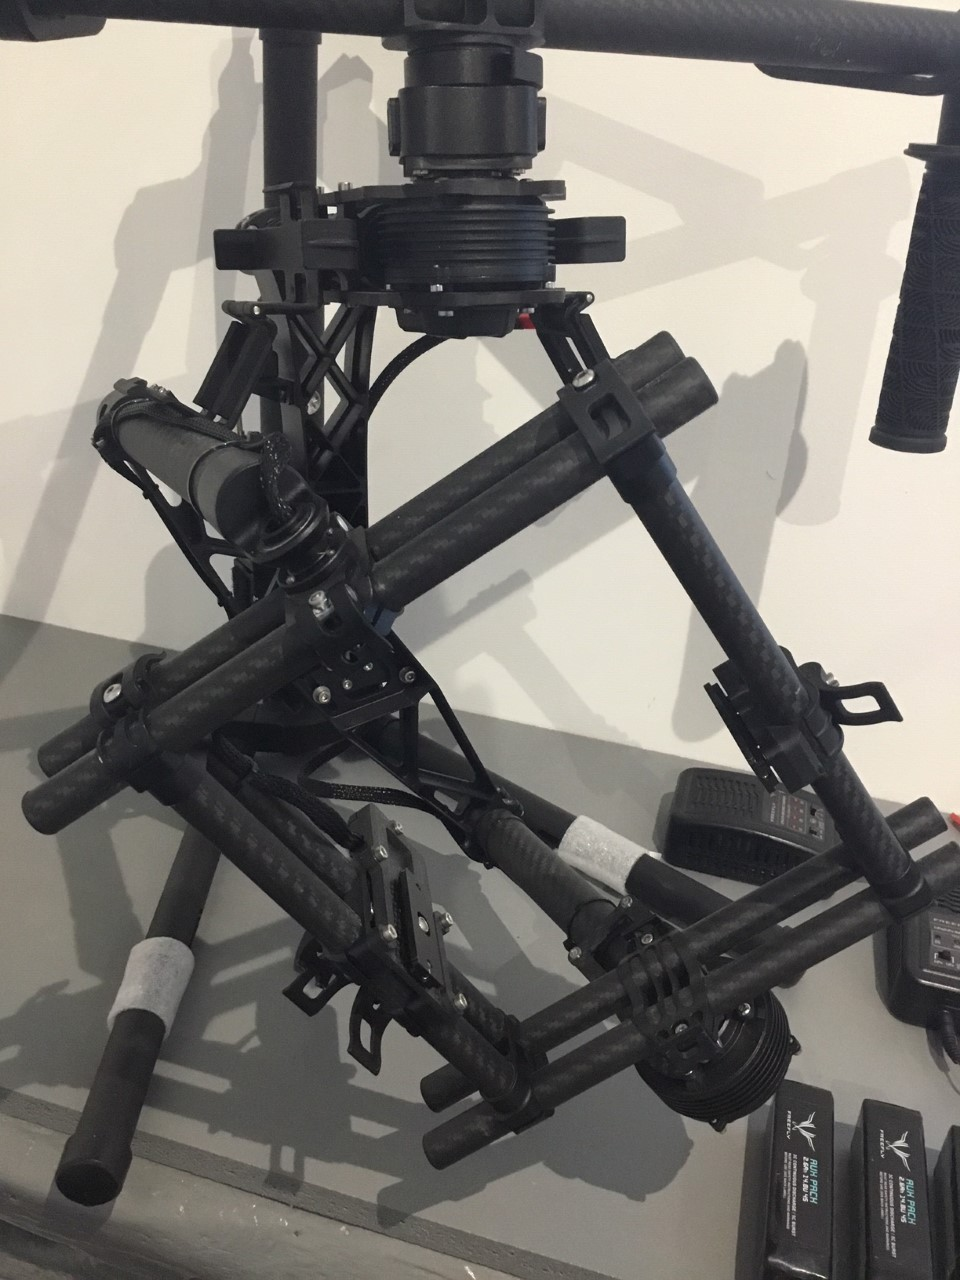 Vends Freefly m15